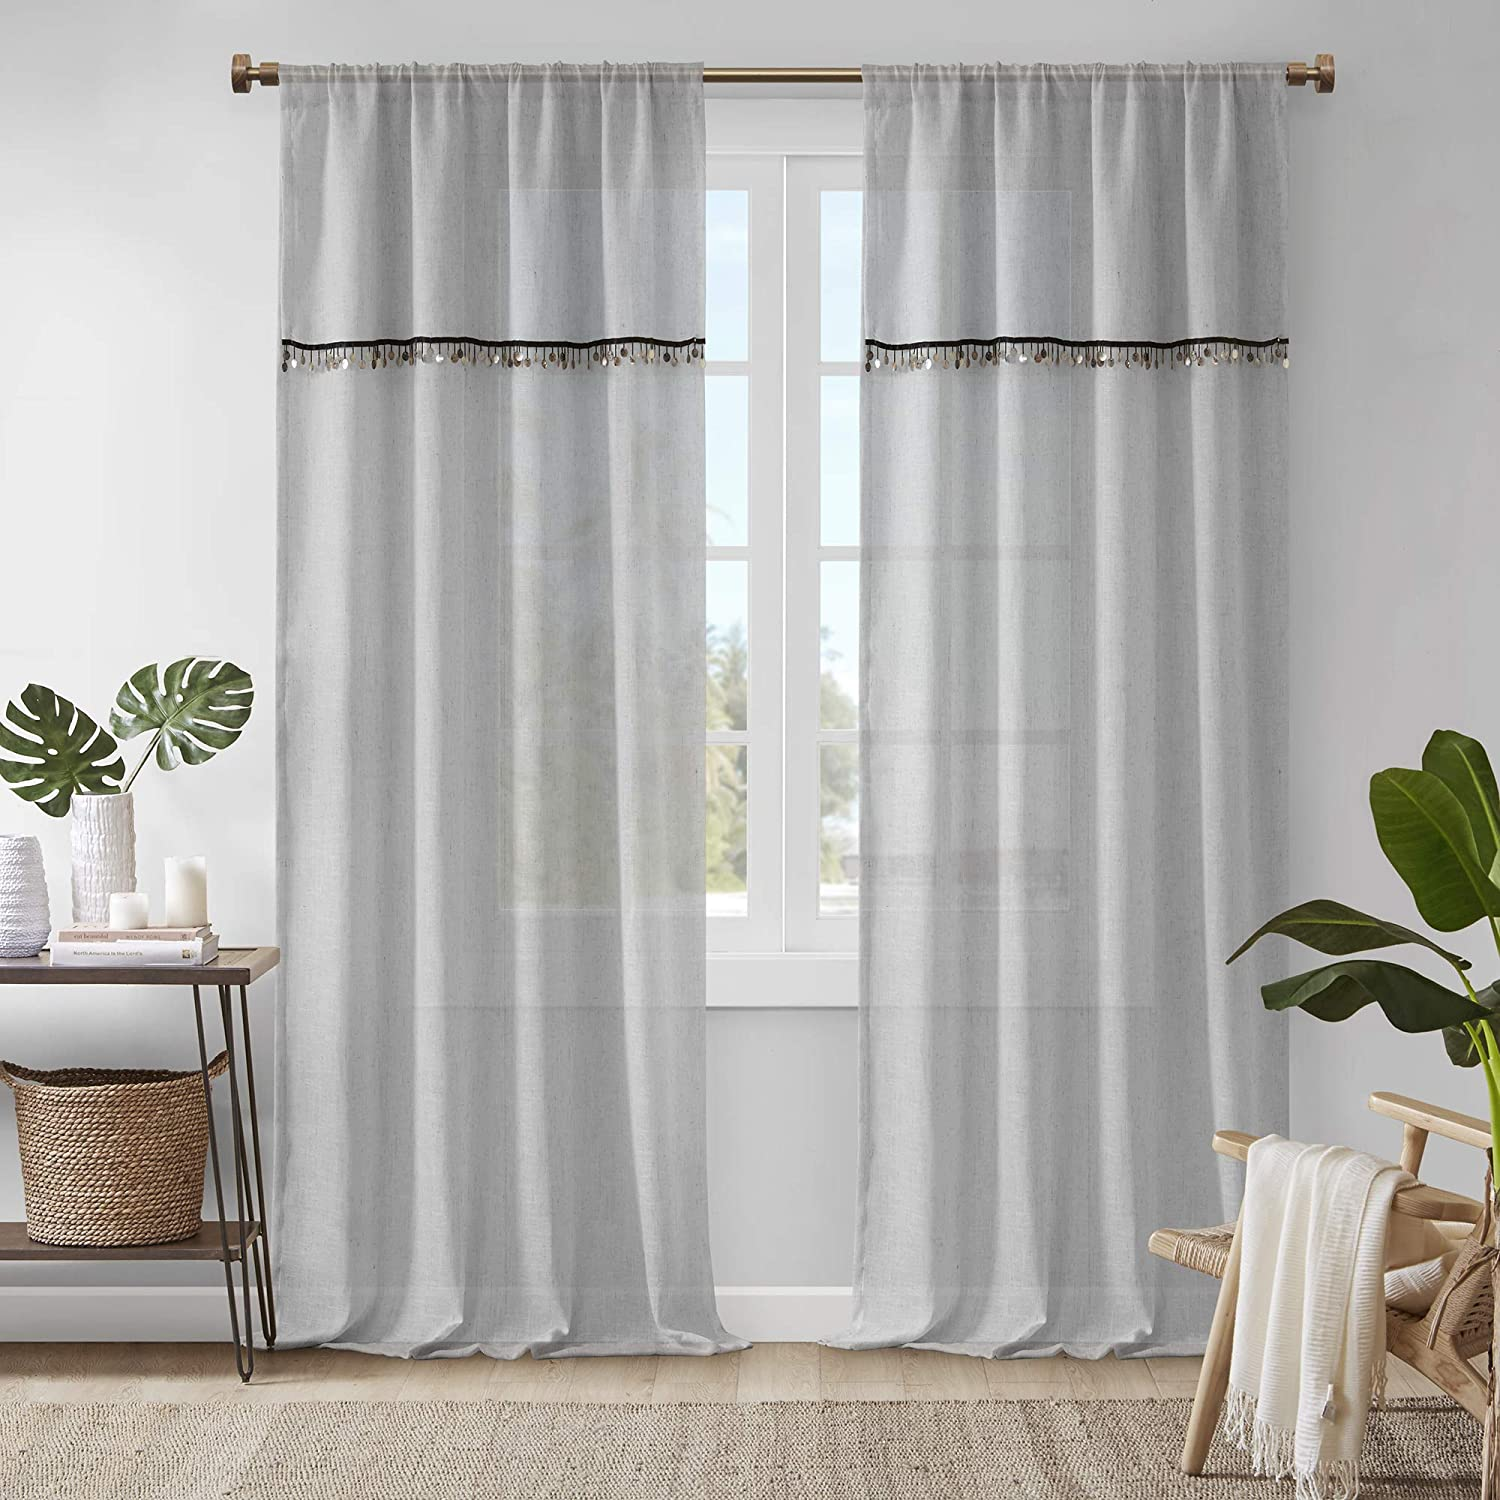 Madison Park Dalis Curtain with Attached Shell Trim Valance Faux Linen Rod Pocket Window Treatment Panel for Living Room, Bedroom and Dorm, 50x84, Grey